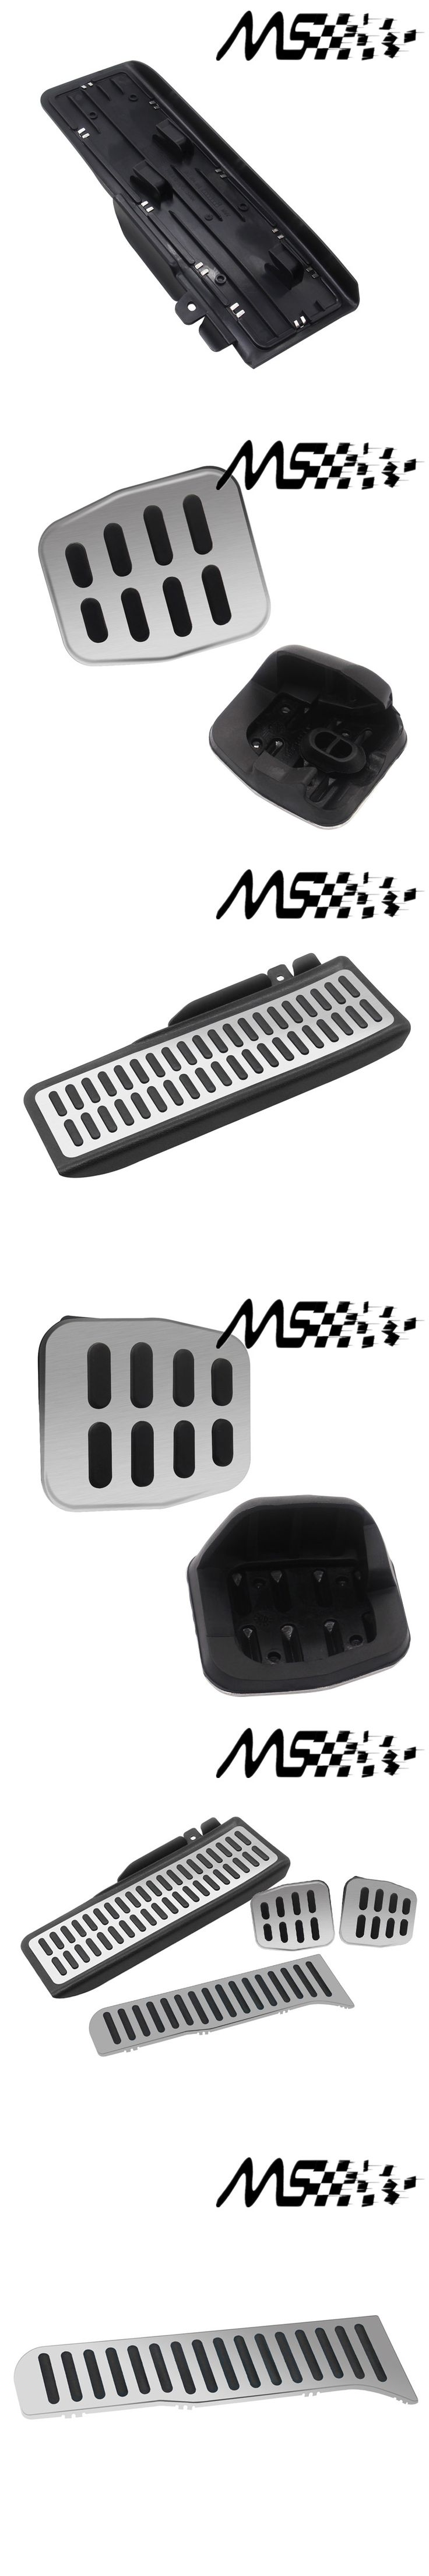 Manual car Stainless Car Pedal For Volkswagen VW Golf 5 6 GTI Octavia Jetta MK5 Scirocco LHD Fuel Footrest Pedals Cover kits